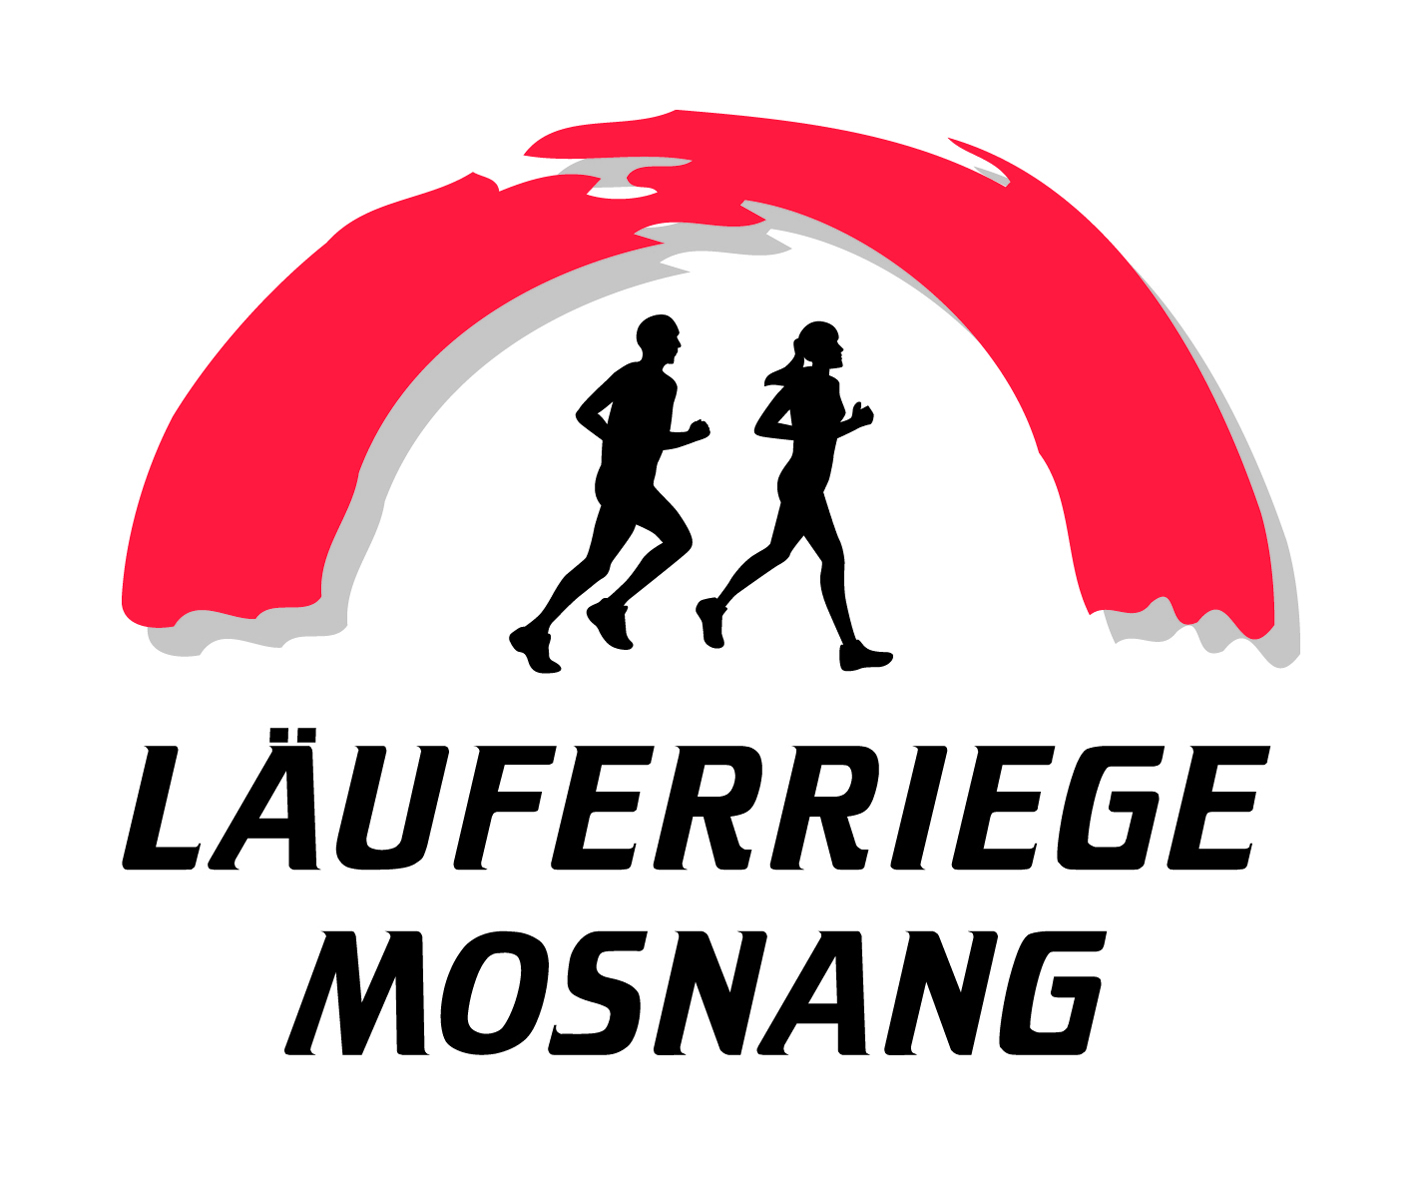 Läuferriege Mosnang